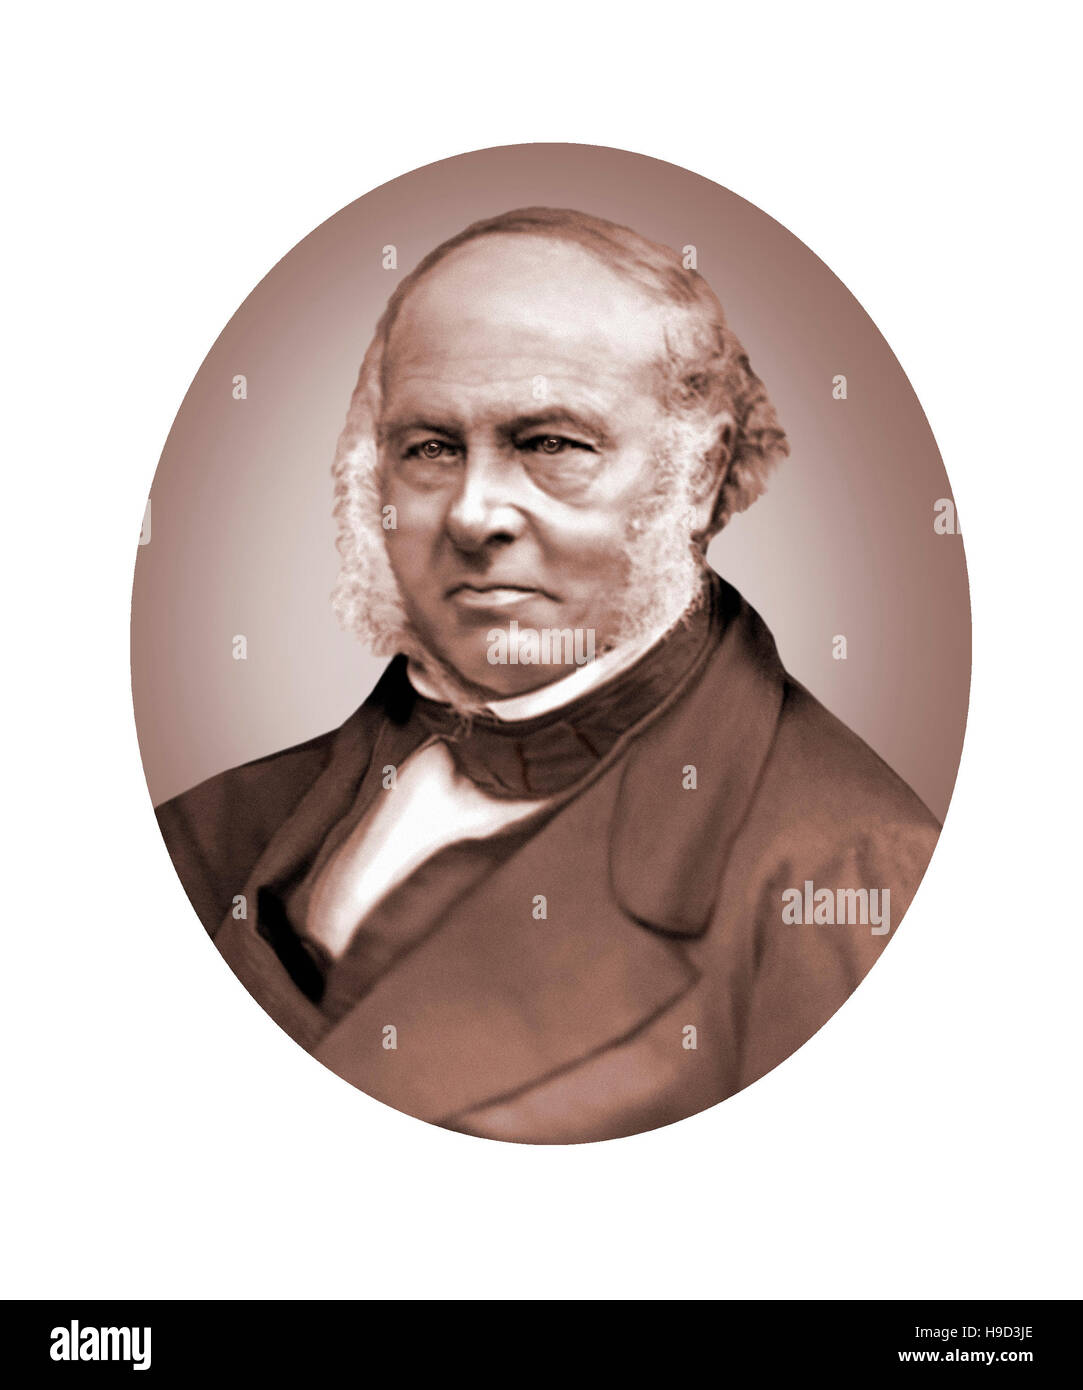 Sir Rowland Hill, 1795-1879, Government Postal Official, Inventor, Social Reformer - Stock Image